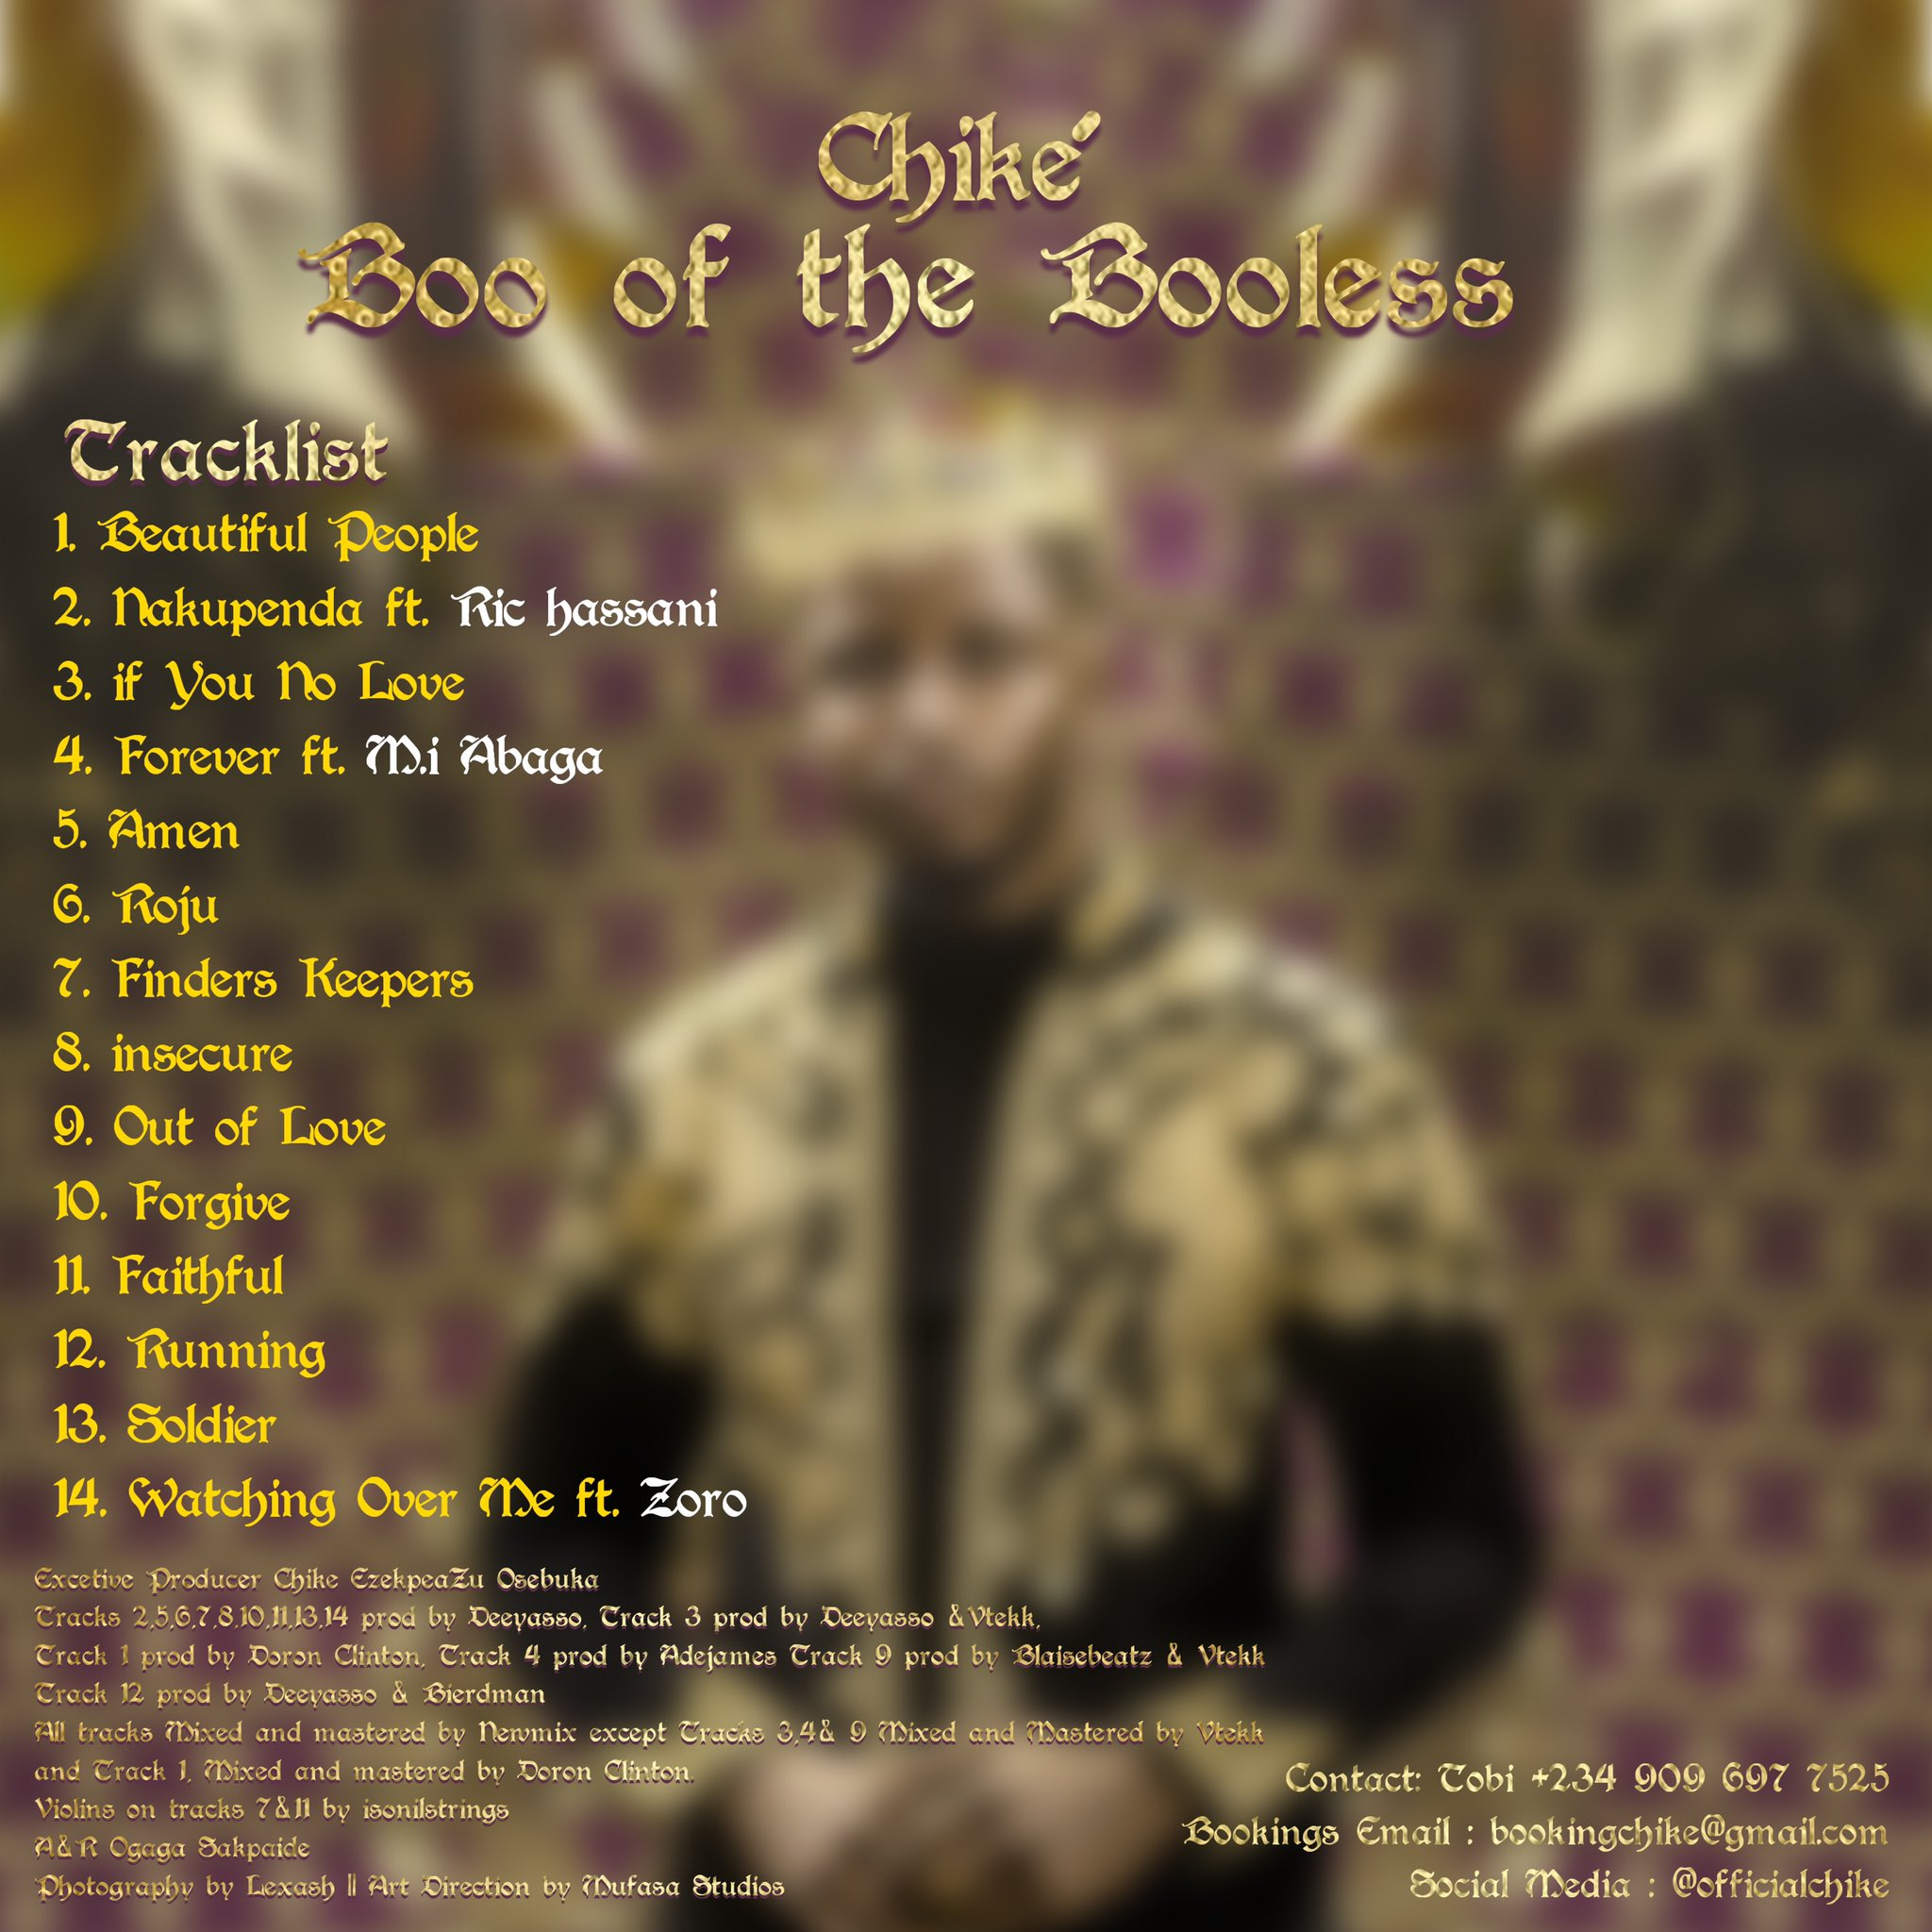 Chike's Boo of the Booless is a Mesmerizing Achievement | Album Review